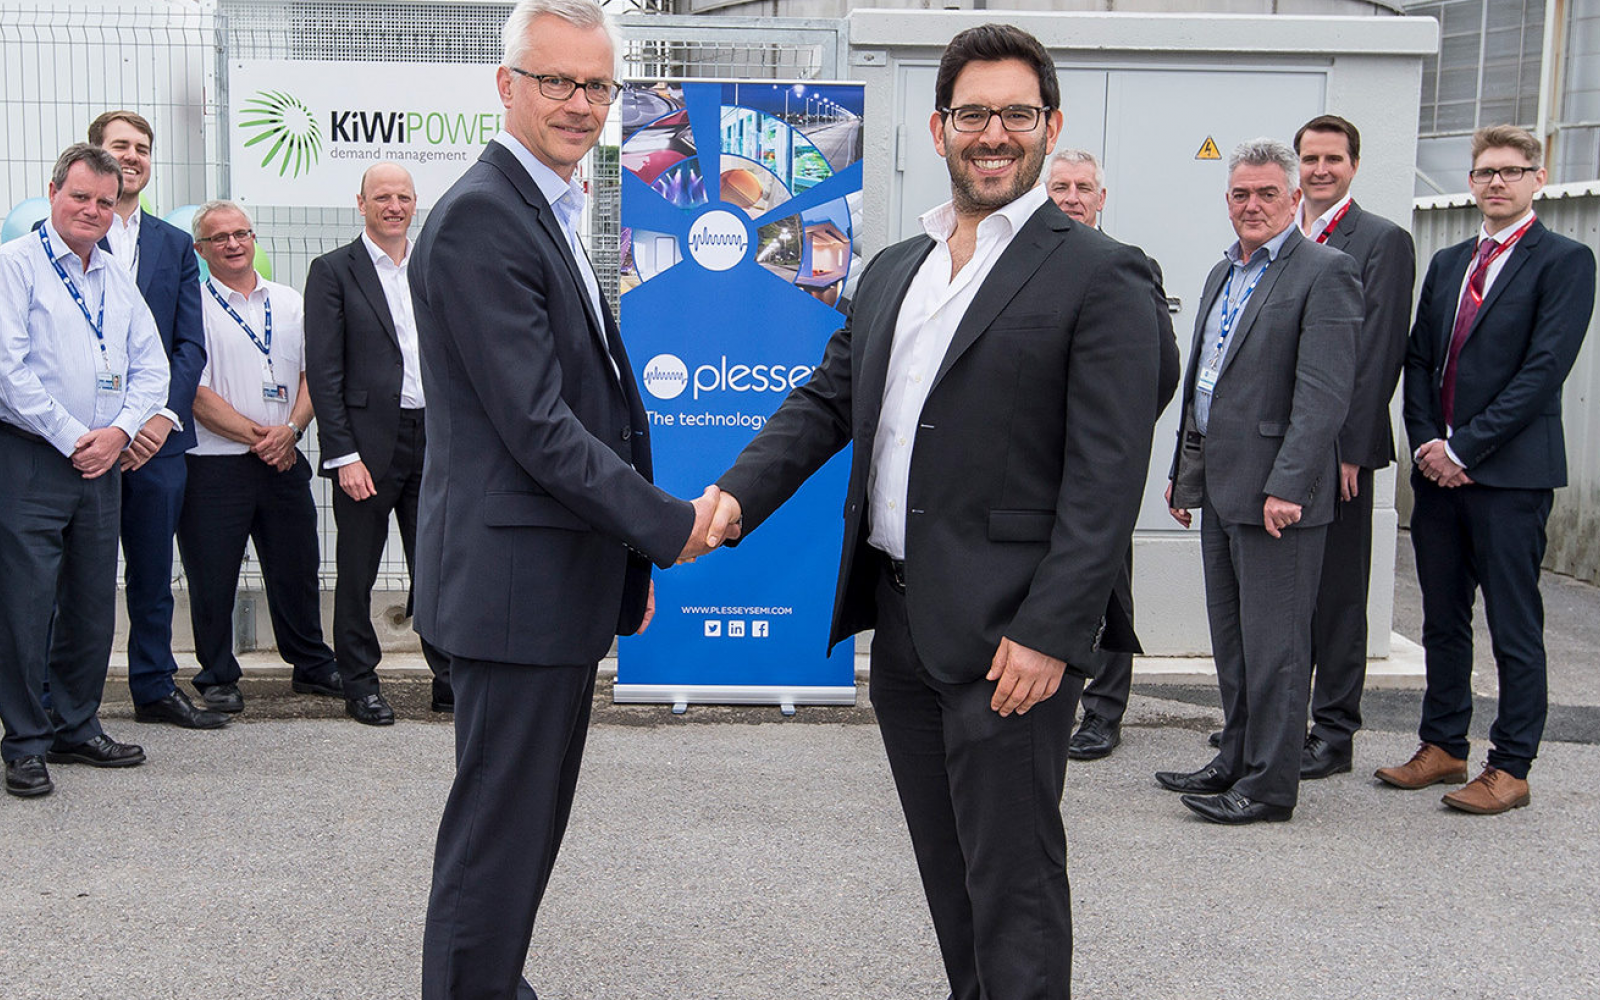 KiWi Power co-founder Yoav Zingher (foreground right) has stood down following the sale of his shares. Image: KiWi Power.